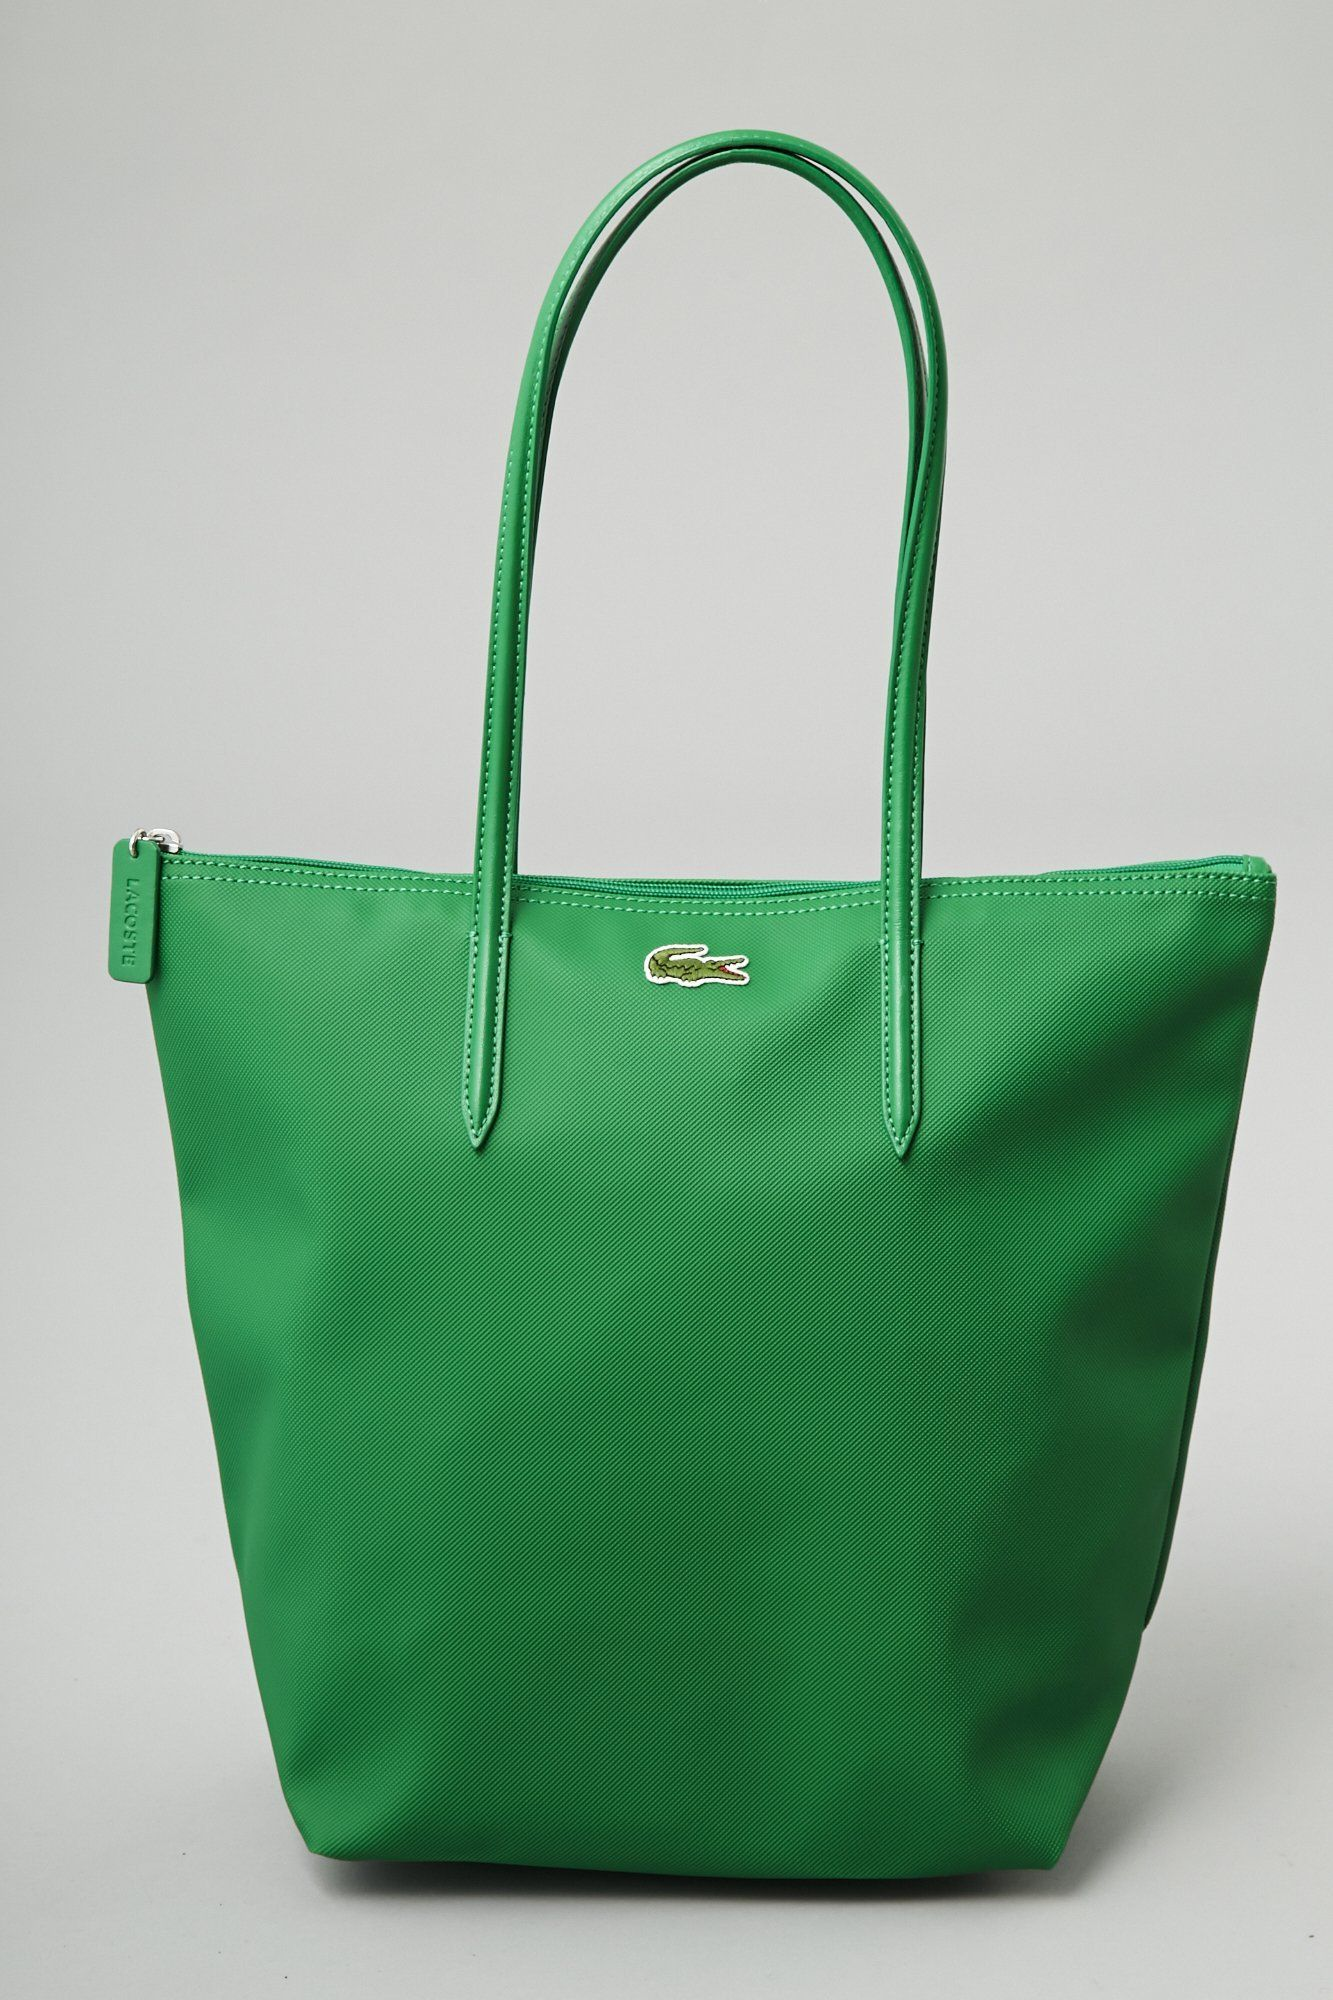 Lacoste  Green  bag from the new  Rio collection  TheCrocGoesToRio Service  bag but in a tan red brown black color f958e11f5e